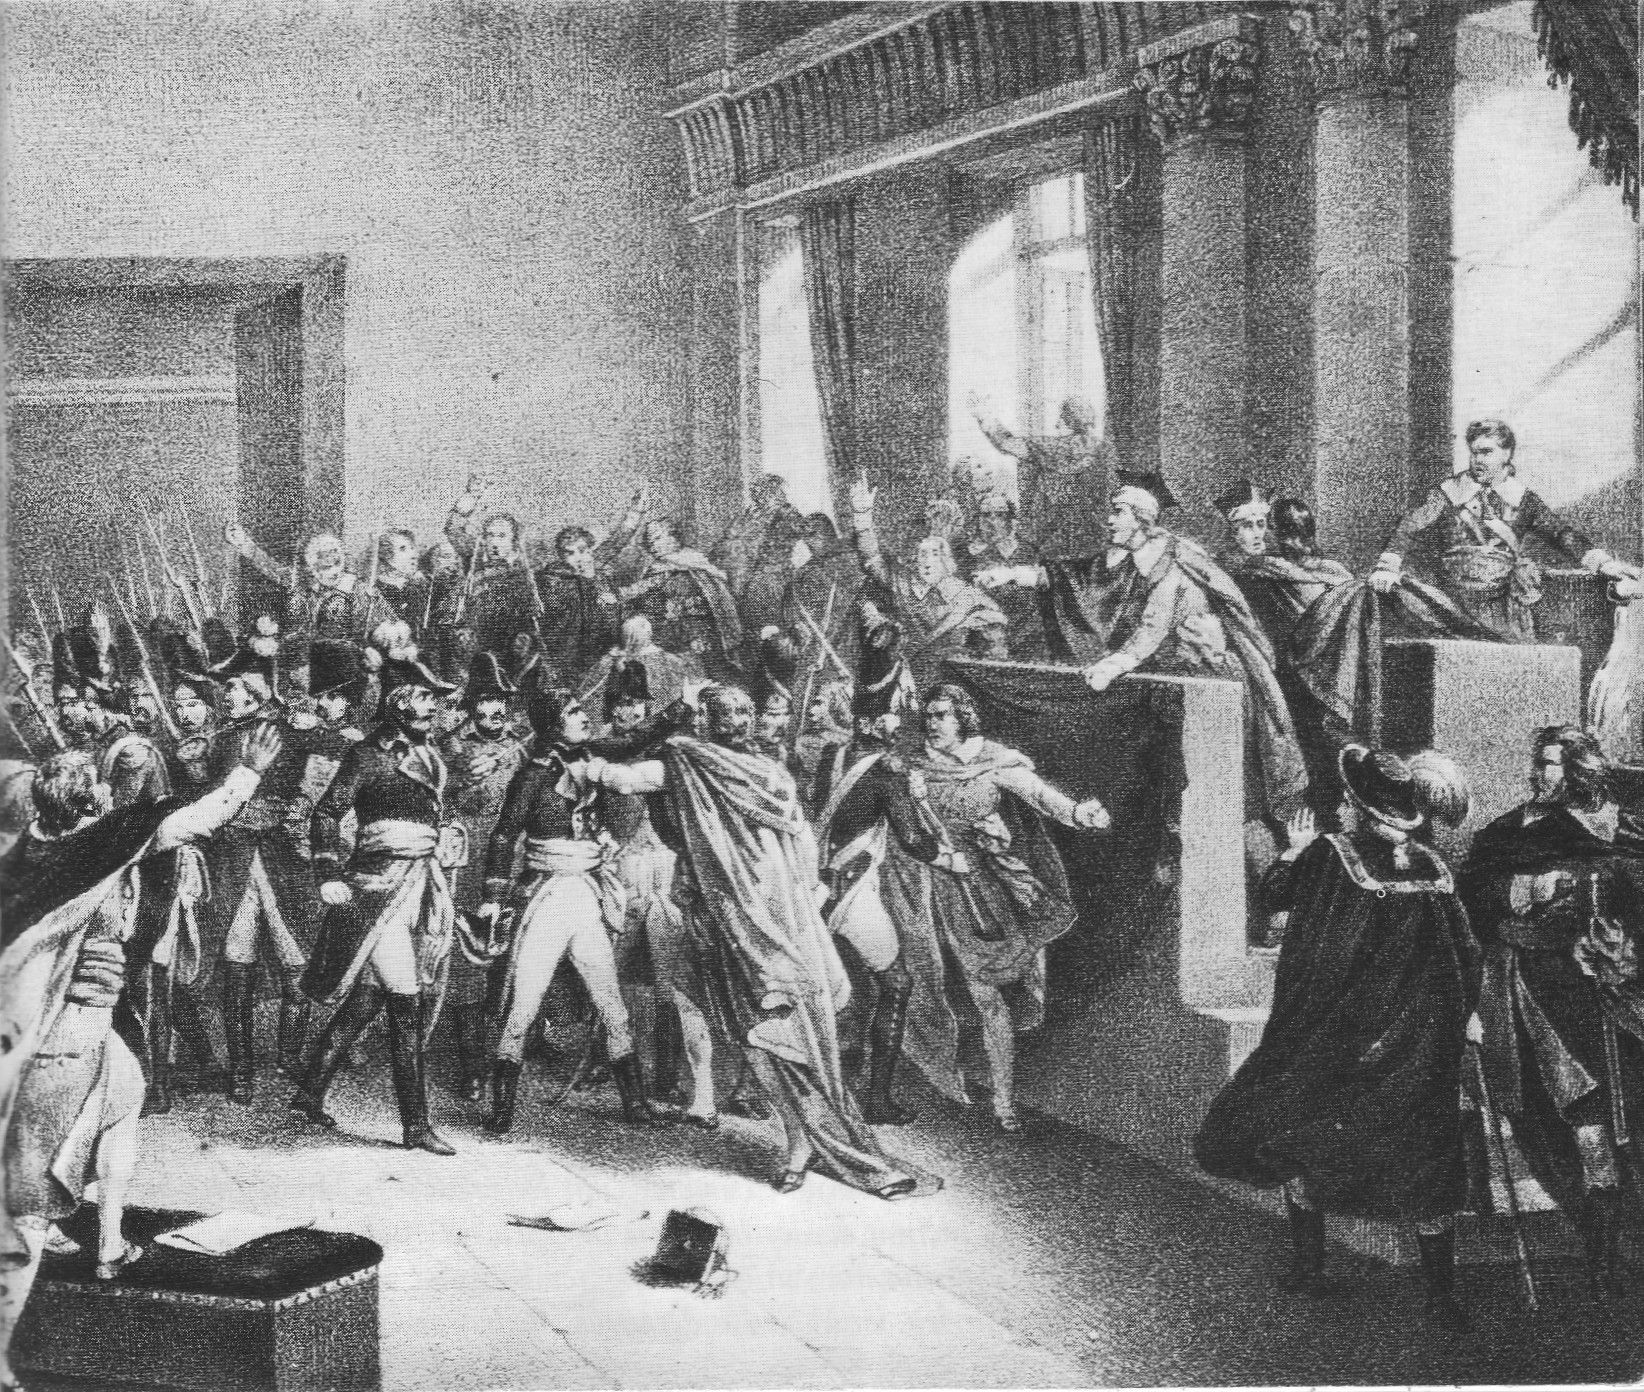 a history of the bloodiest revolution in the french revolution It was one of the bloodiest and most significant moments in the history of france and in the history of the european continent the french revolution showed people.